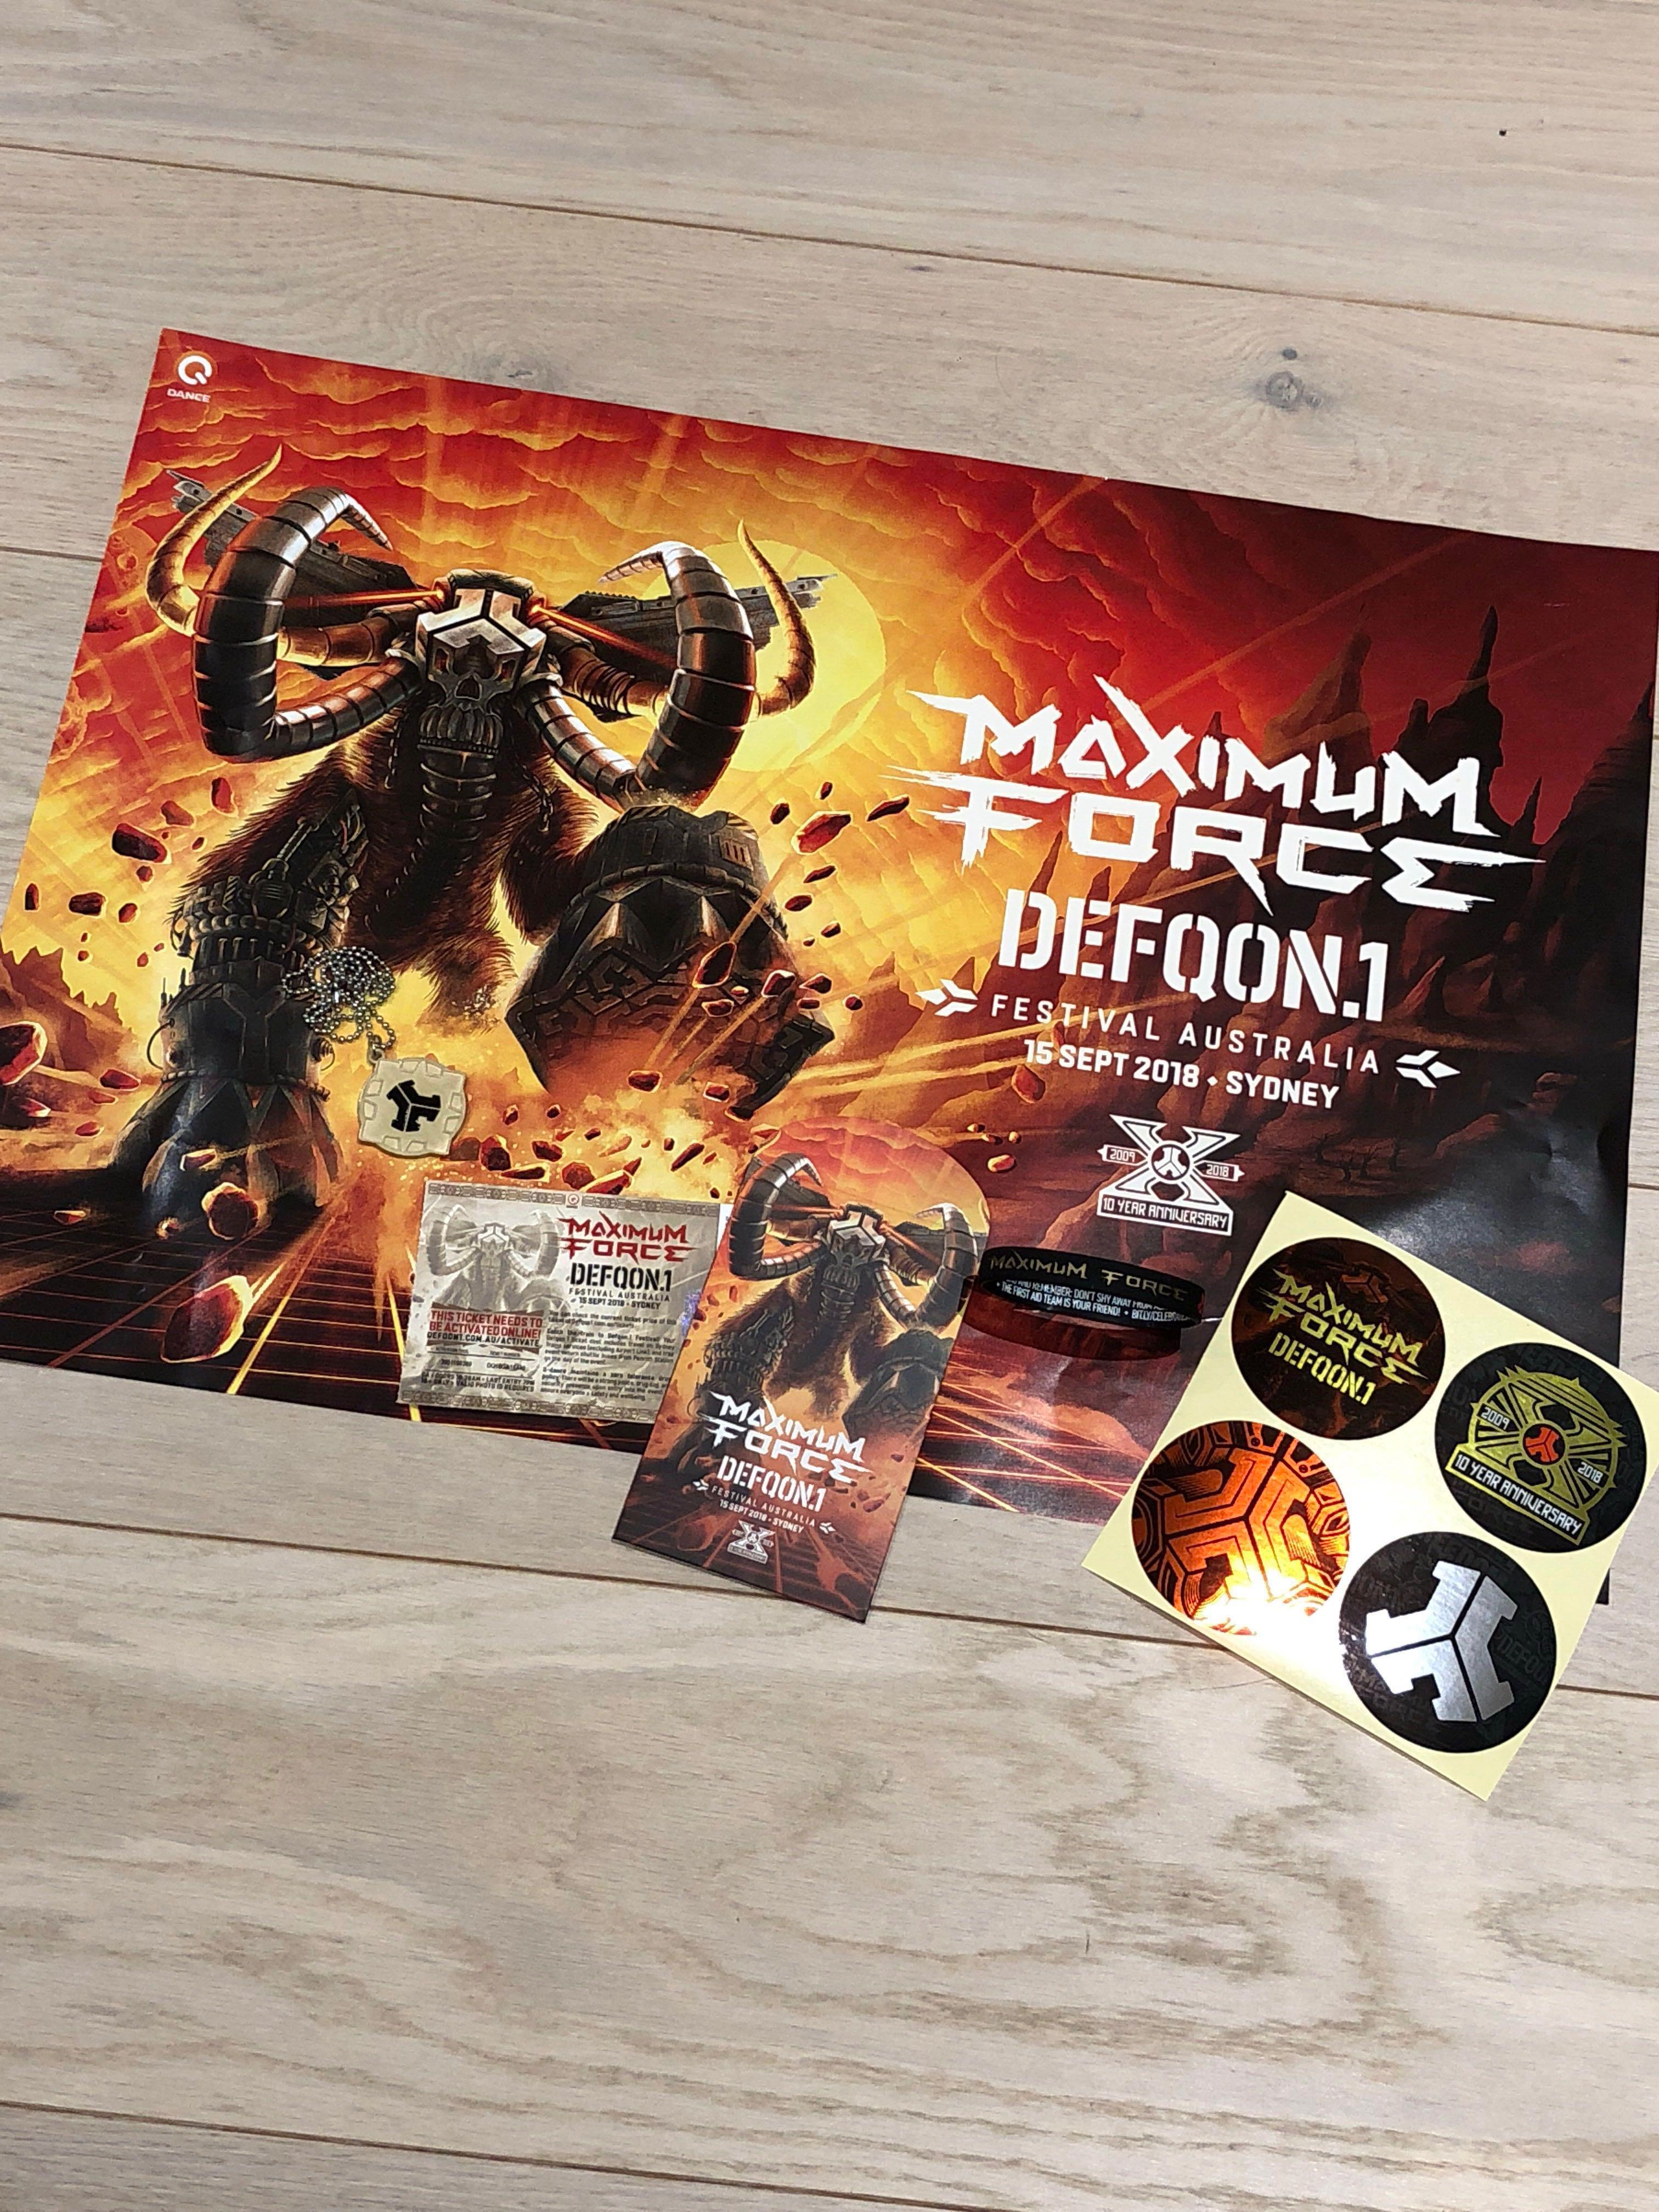 DEFQON HARDCOPY TICKET, Tickets & Vouchers, Others on Carousell